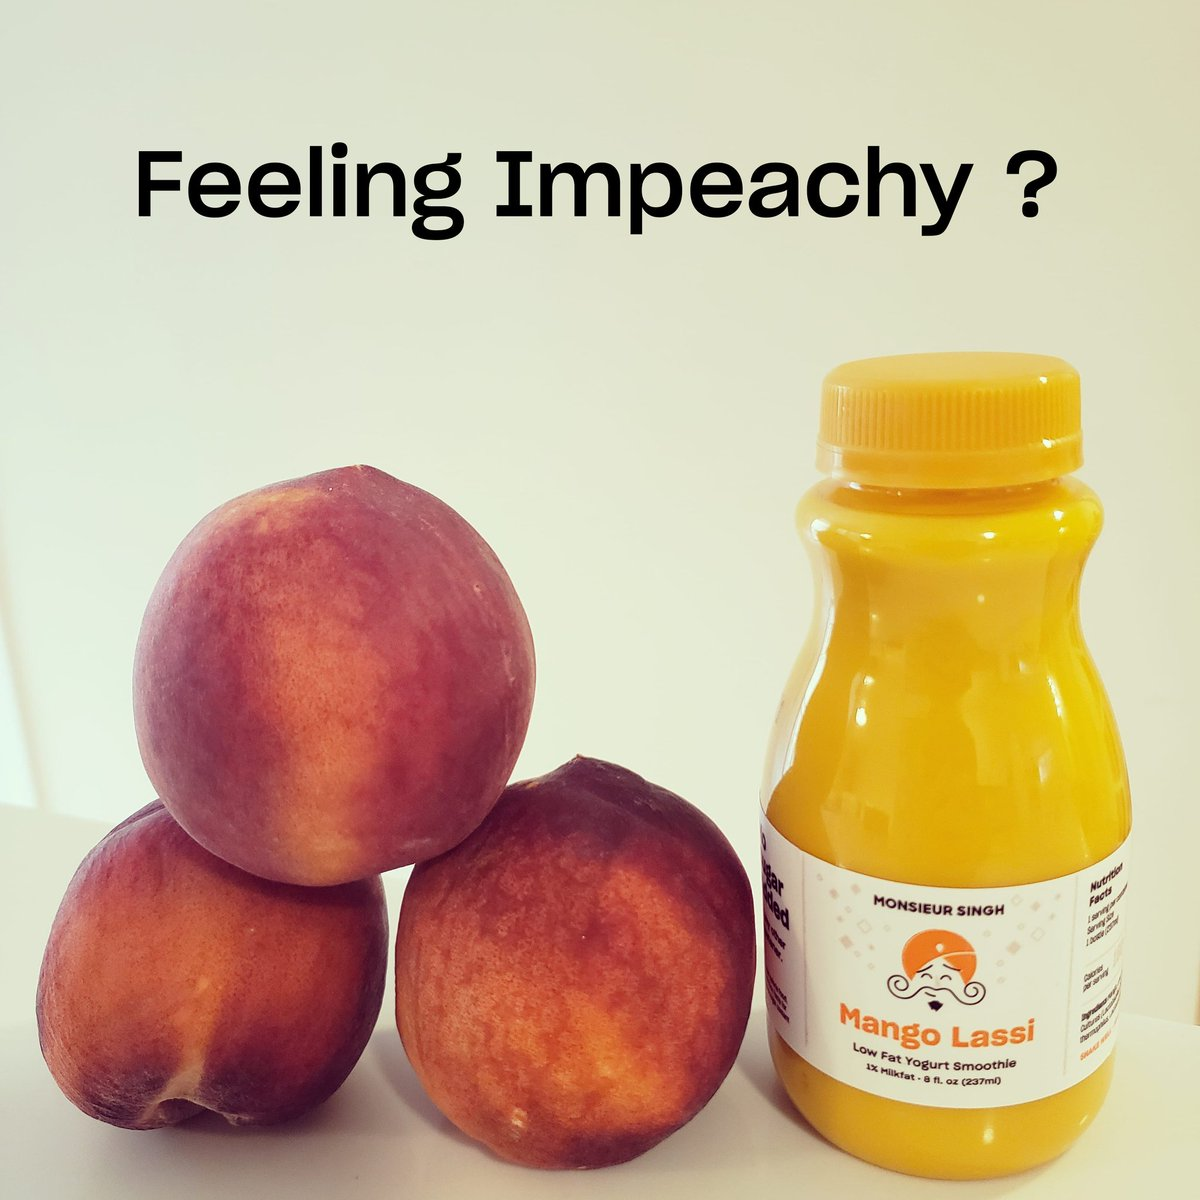 Very very tasty Mango Lassi with no added sugar for that impeachy feeling 🍑  #lassi #mangolassi #singh #monsieursingh #monsieursinghlassi #tastyandhealthy #deliciousandnutritious #healthyandhappy #impeachtrump #25thamendment #impeachment #impeachtrumpnow #ImpeachandRemove